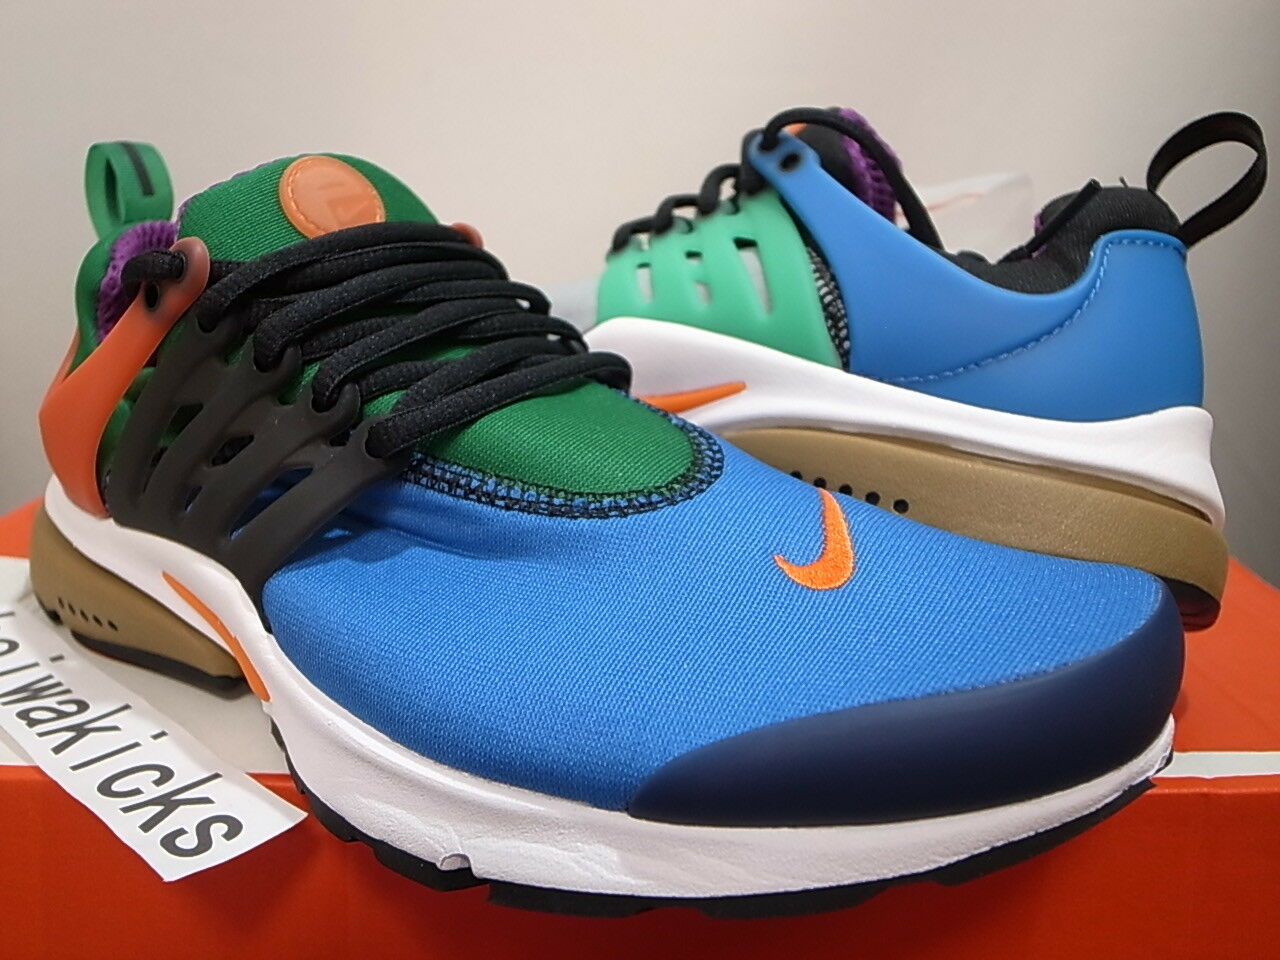 2016 NIKE AIR PRESTO QS GREEDY BEAMS WHAT THE MULTI-COLOR 886043-400 size 8